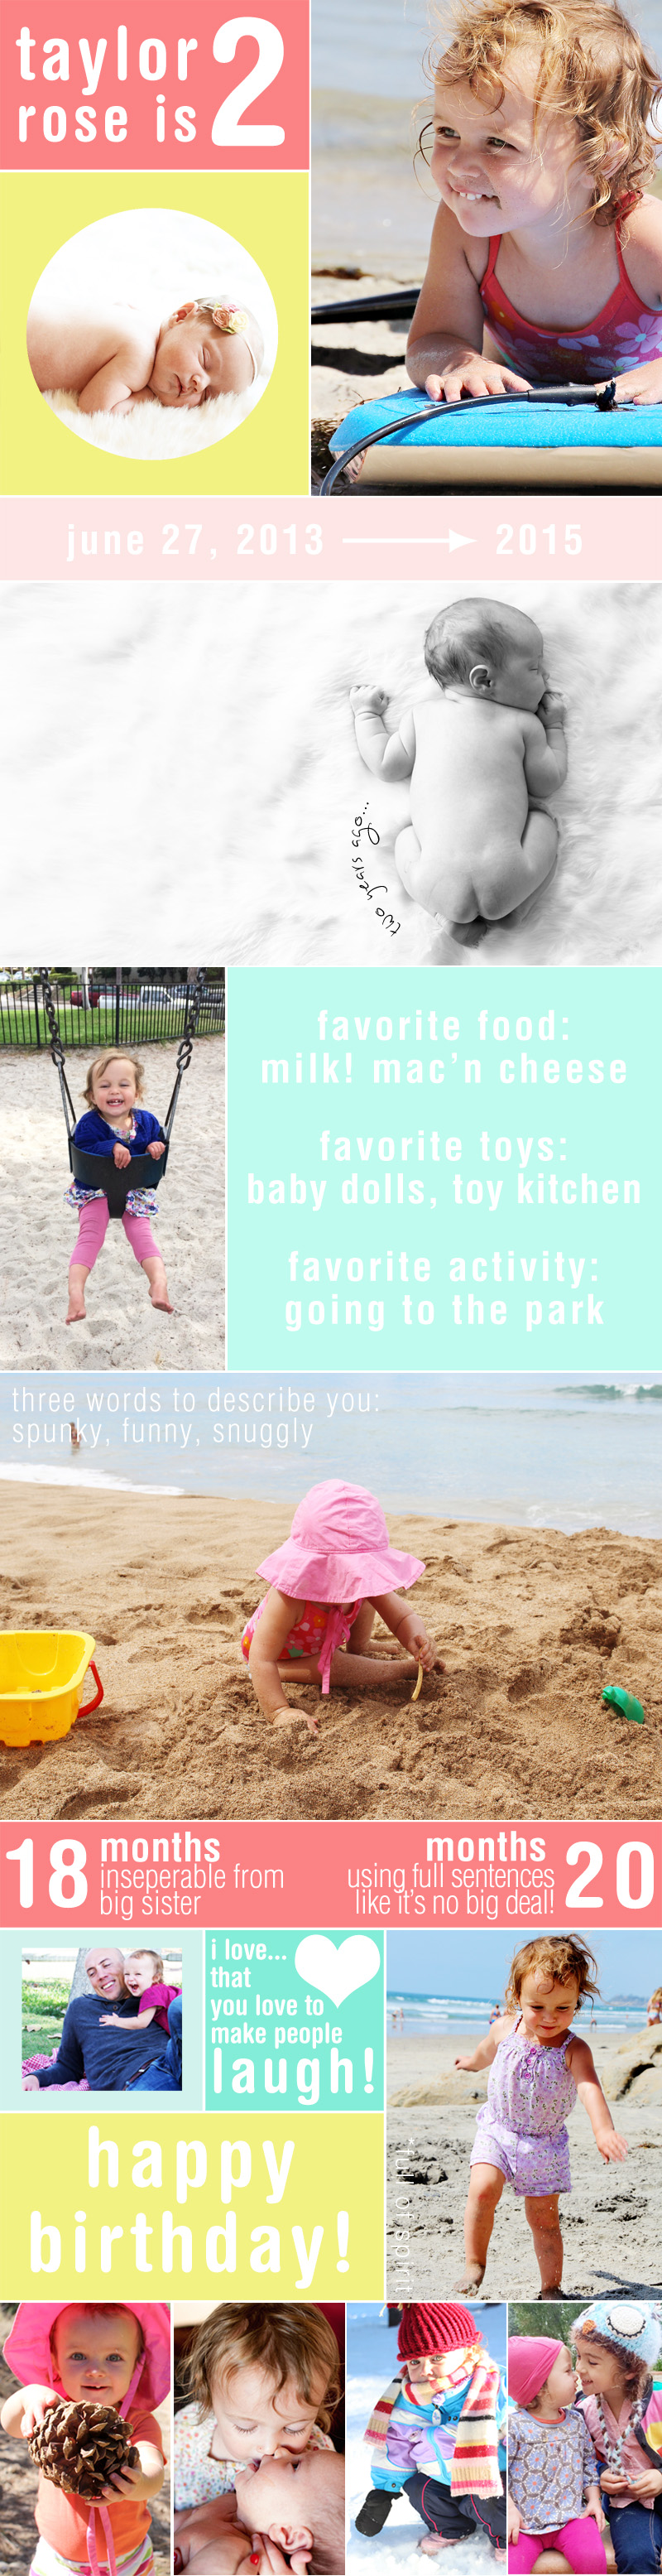 Happy 2nd Birthday, Taylor Rose! An Infographic for My Girl   PepperDesignBlog.com